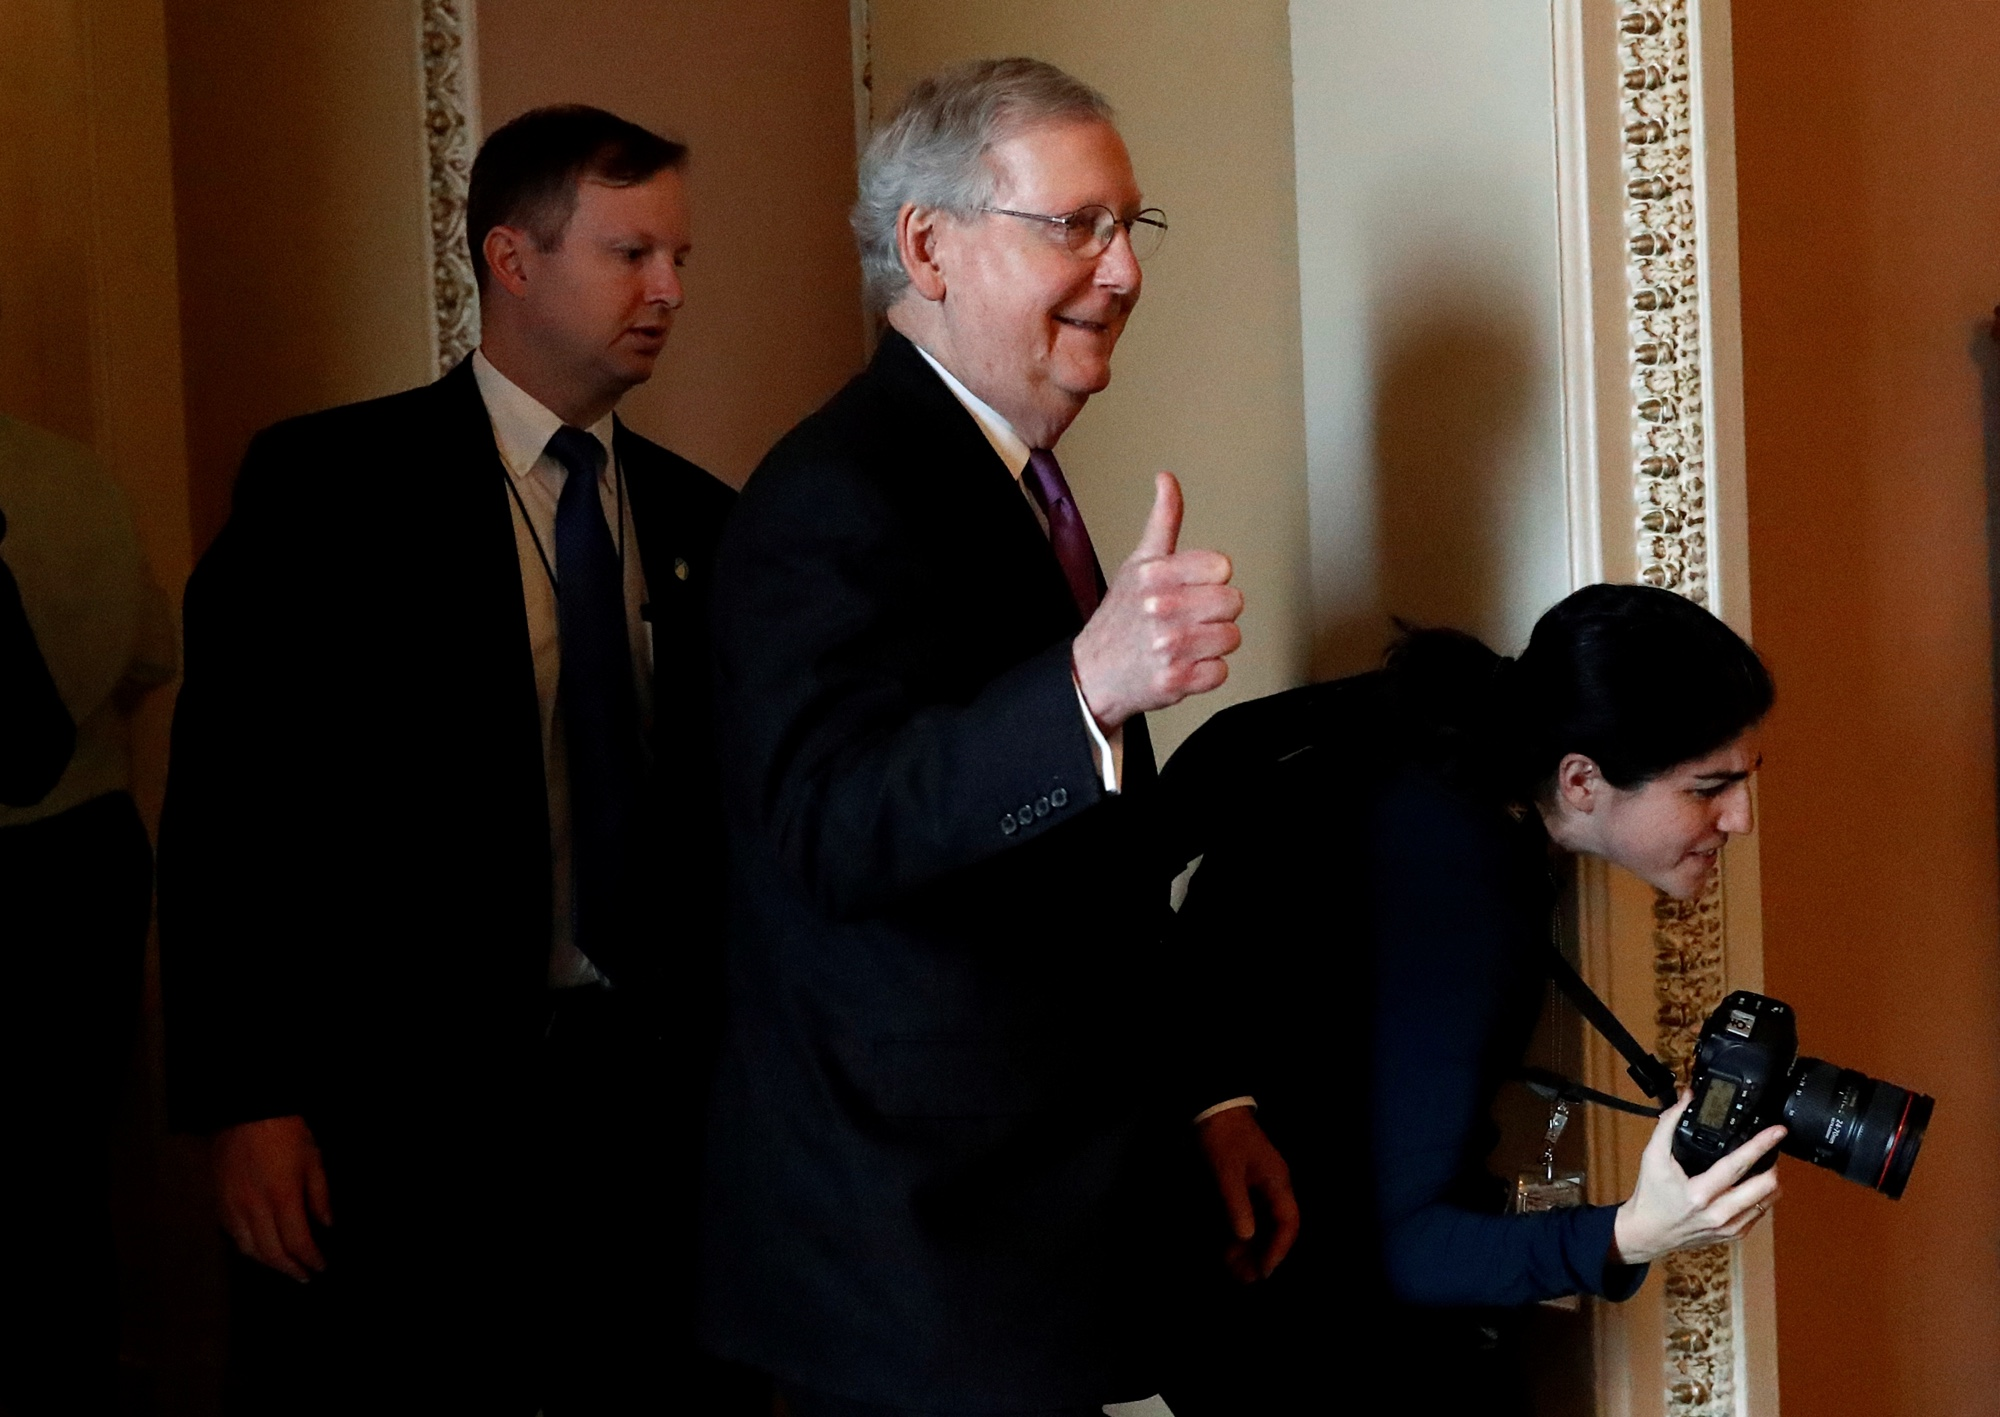 End to Federal shutdown in sight: Senate has votes to pass bill to reopen government